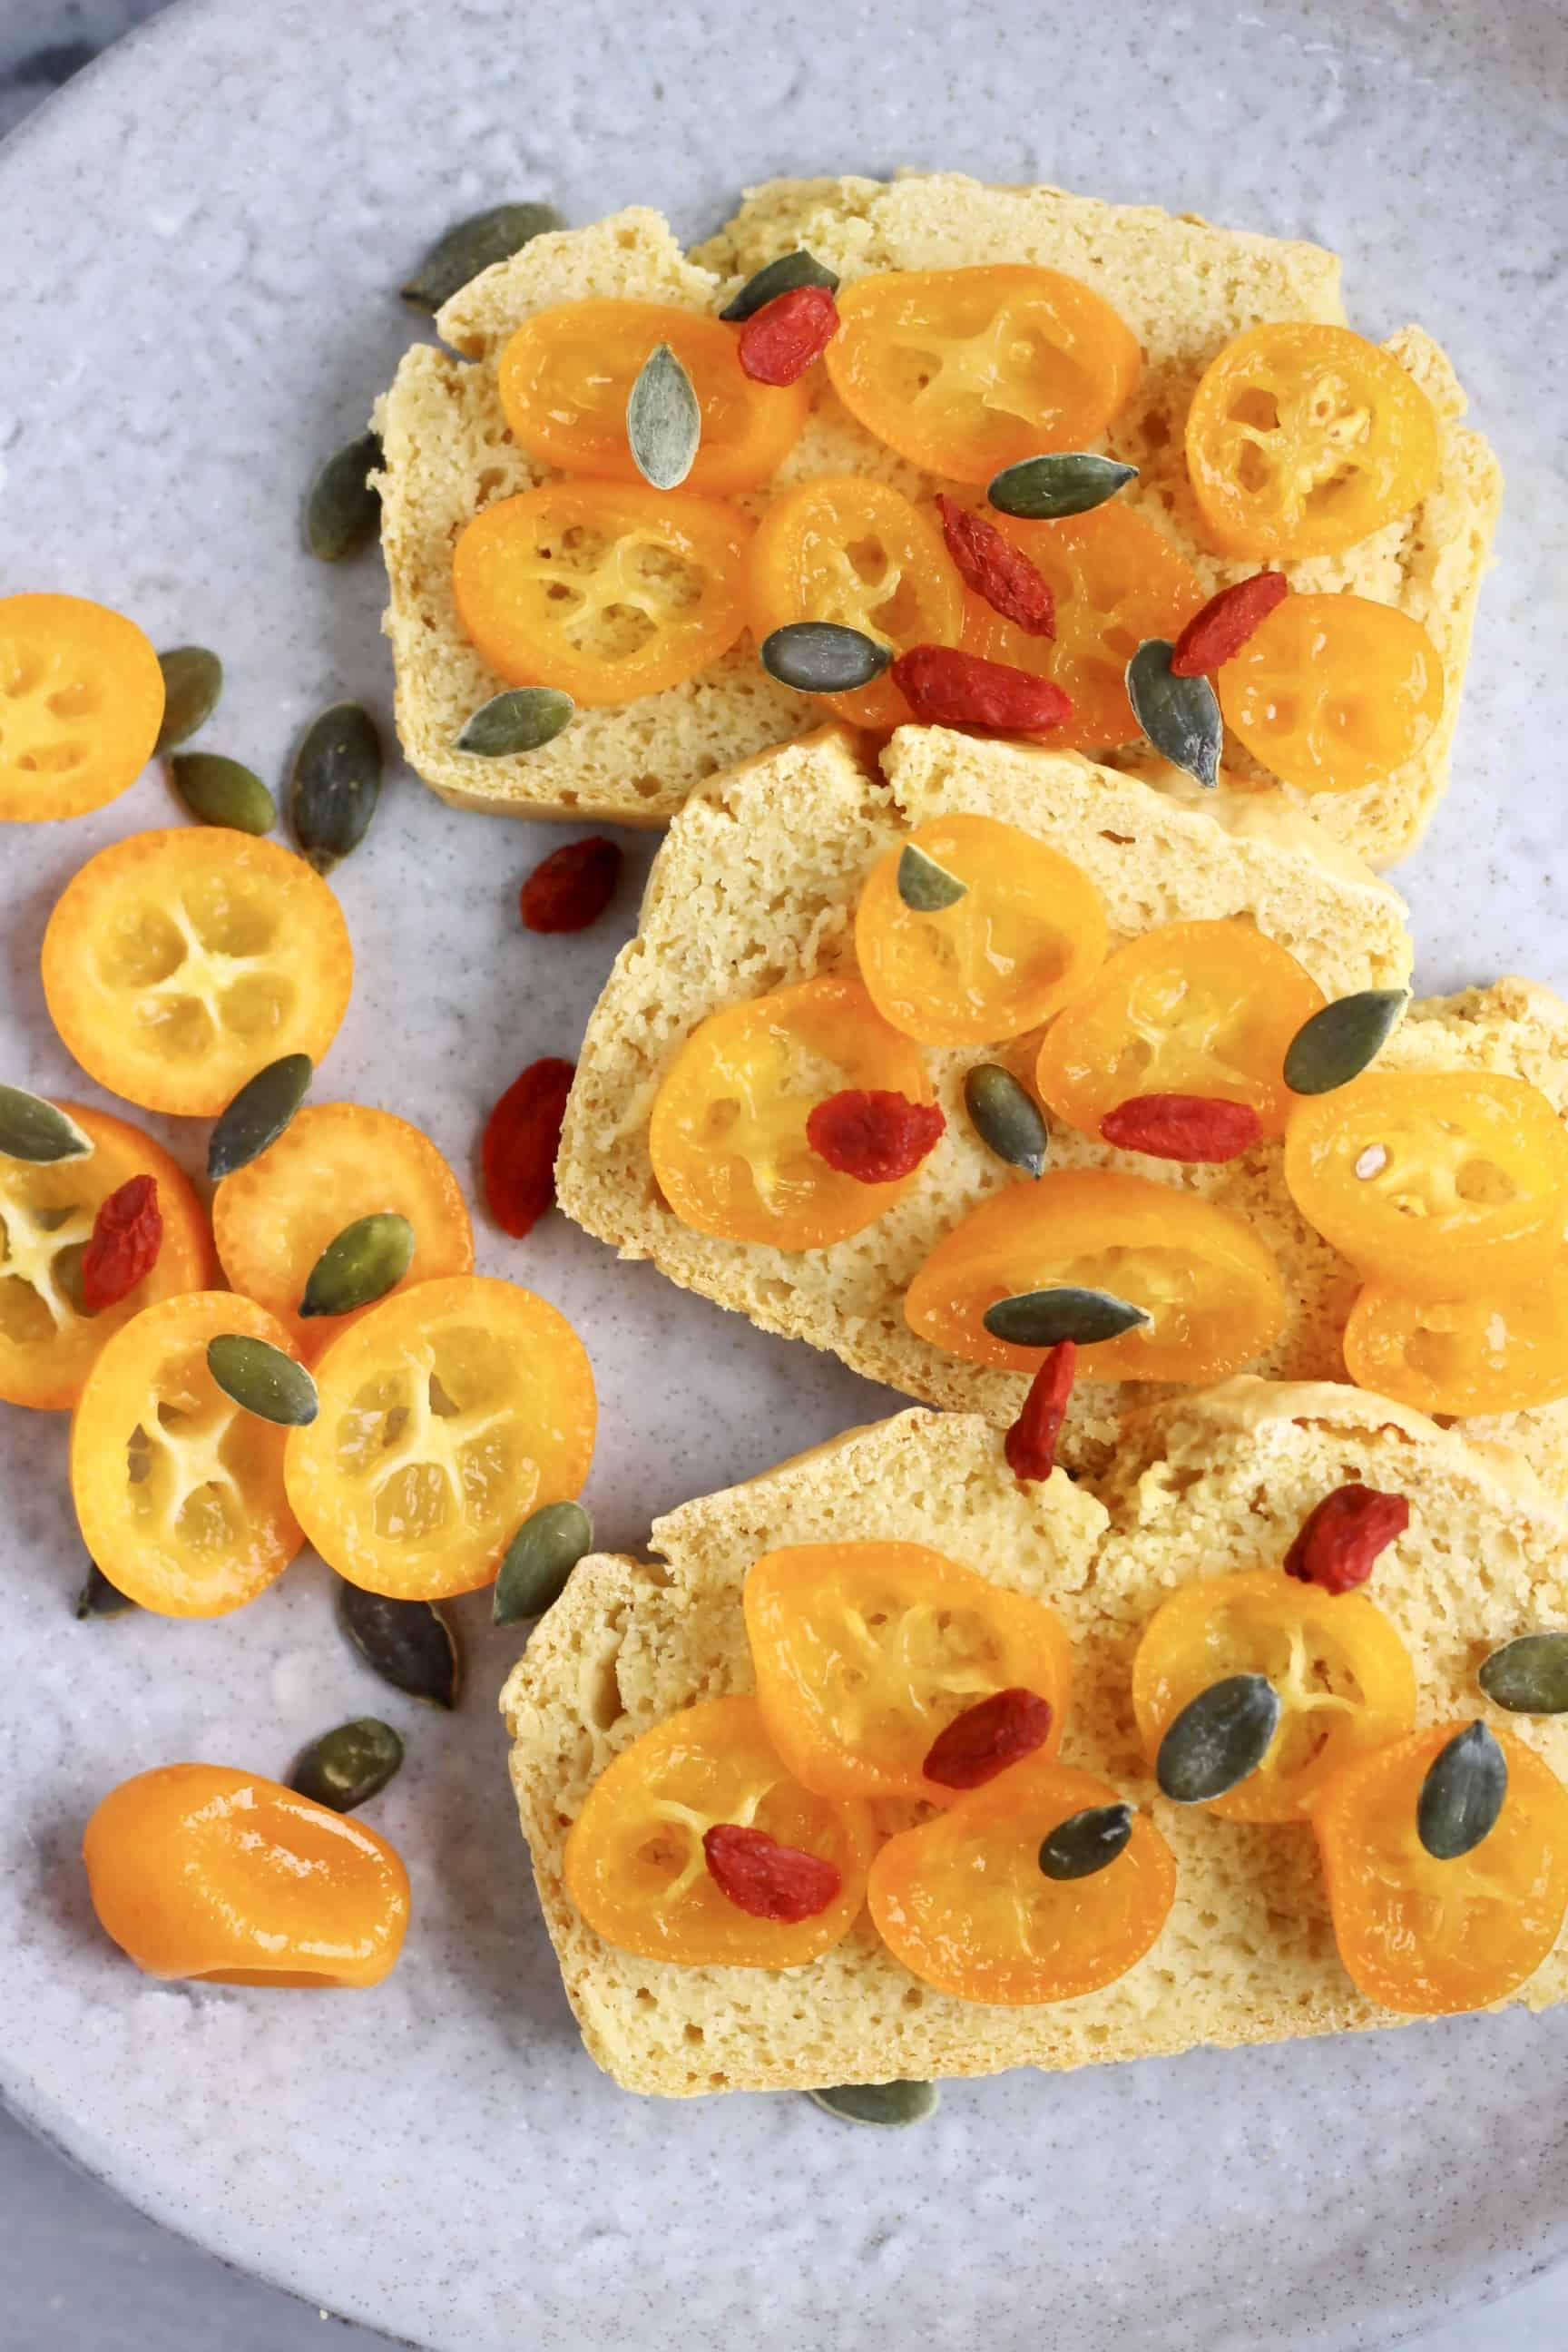 Three slices of gluten-free vegan bread topped with sliced kumquats, goji berries and pumpkin seeds on a grey plate